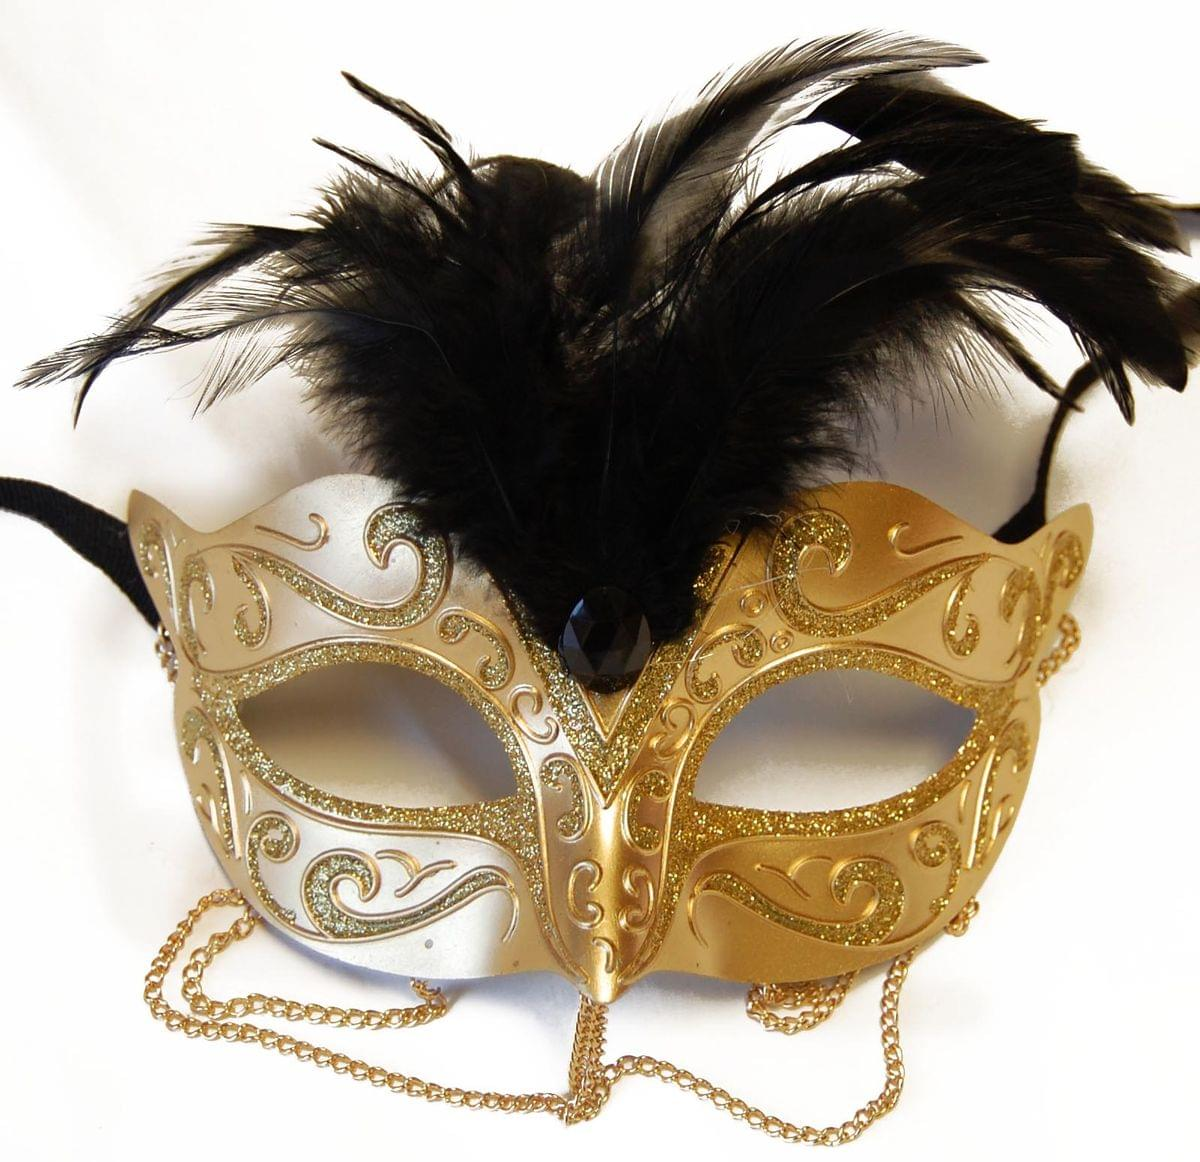 Tamire Costume Mask With Gold Chain: Gold/Gold